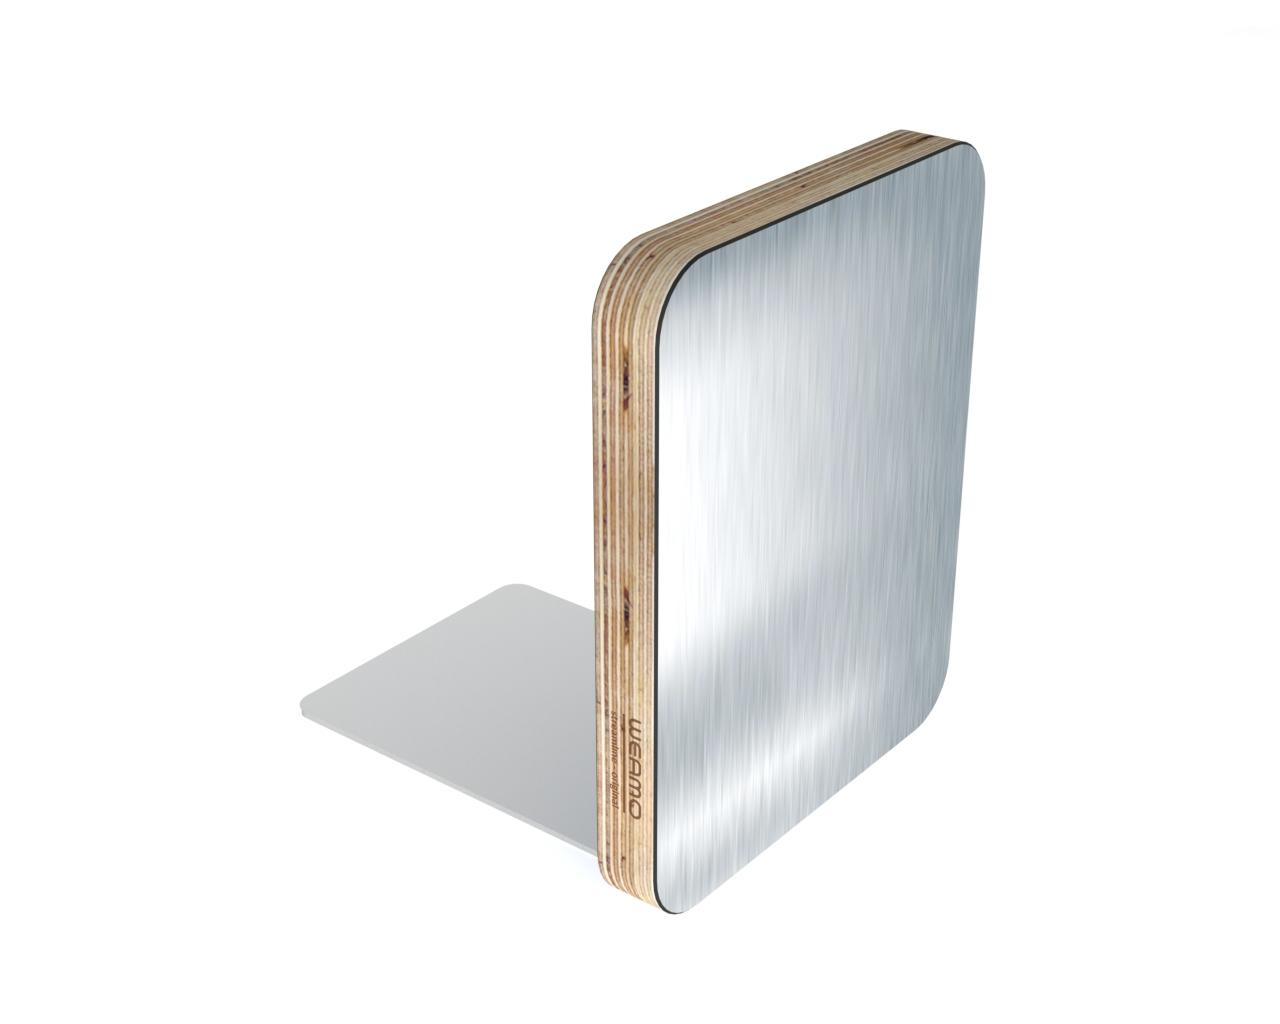 Metal Finish Bookend - Brushed Stainless Steel